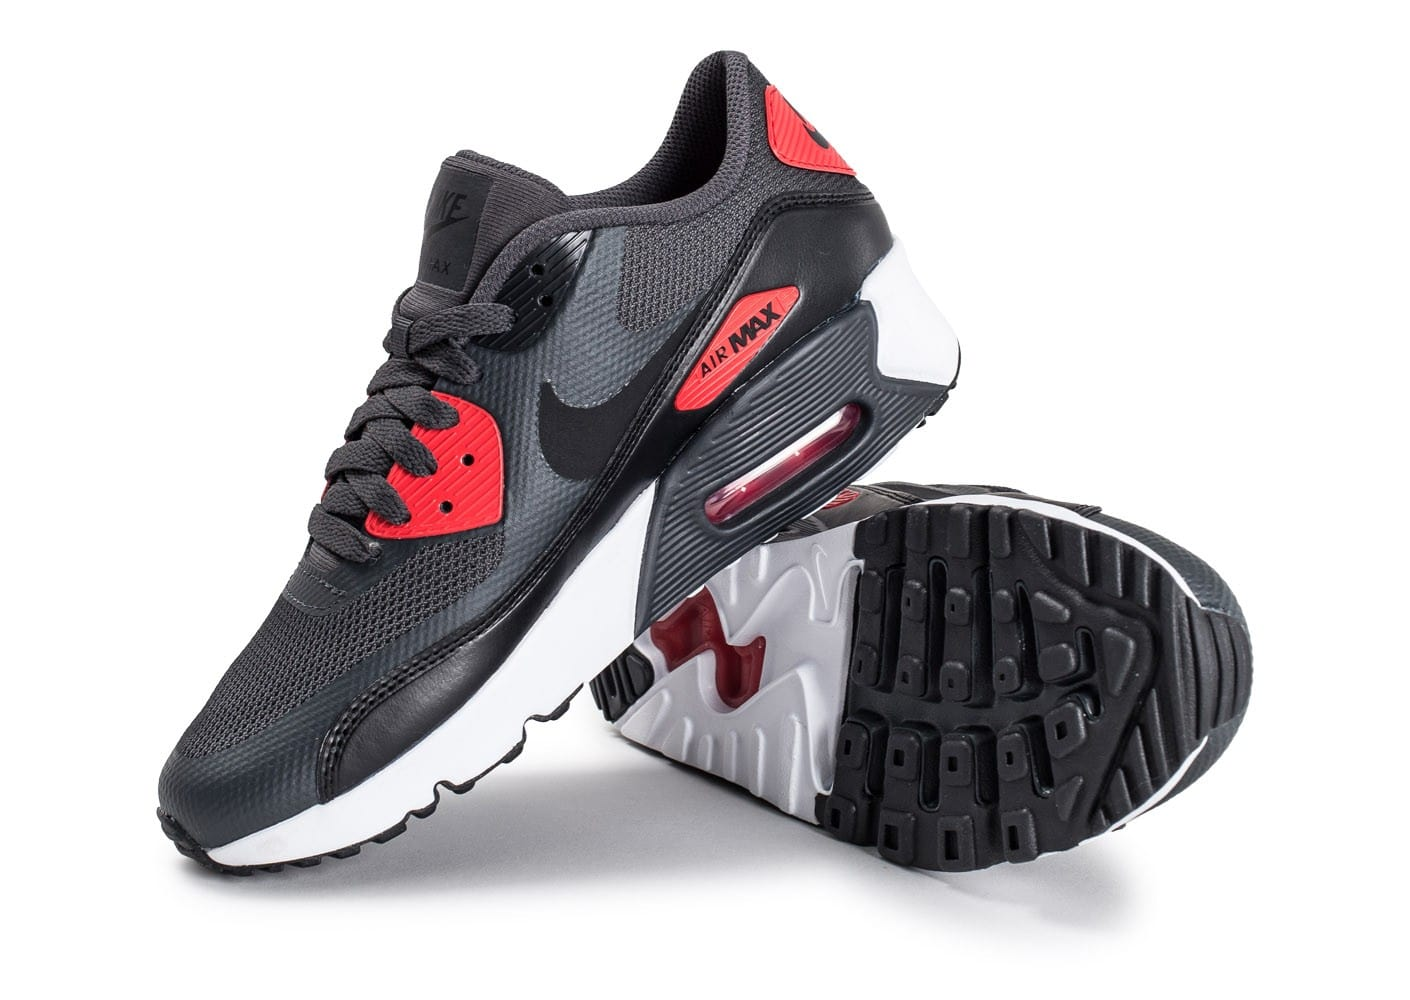 size 40 146f9 c7470 ... Chaussures Nike Air Max 90 Ultra 2.0 Junior Anthracite et rouge vue  avant ...